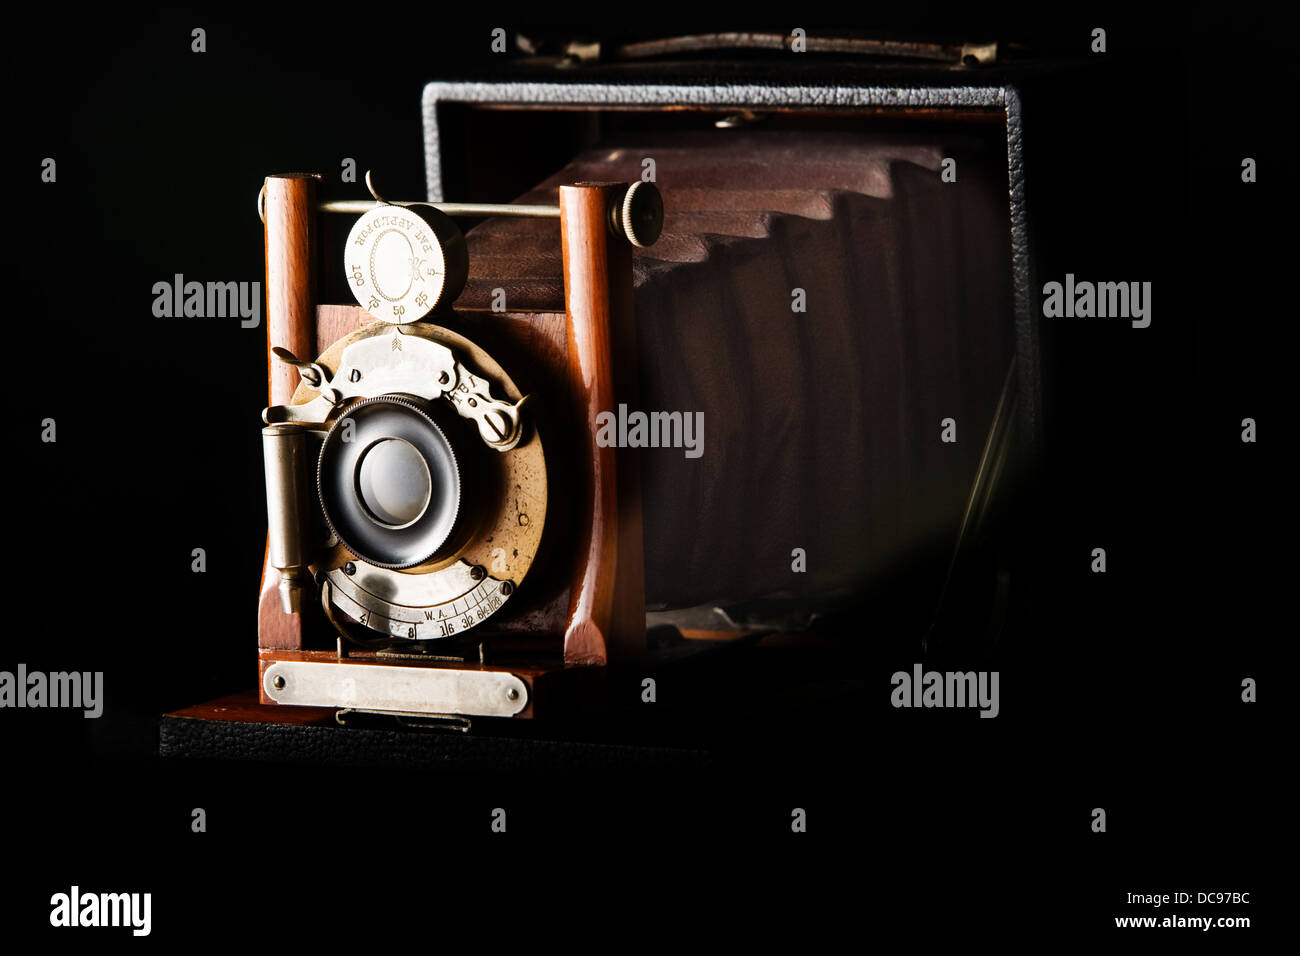 Antique view Camera with leather bellows - Stock Image